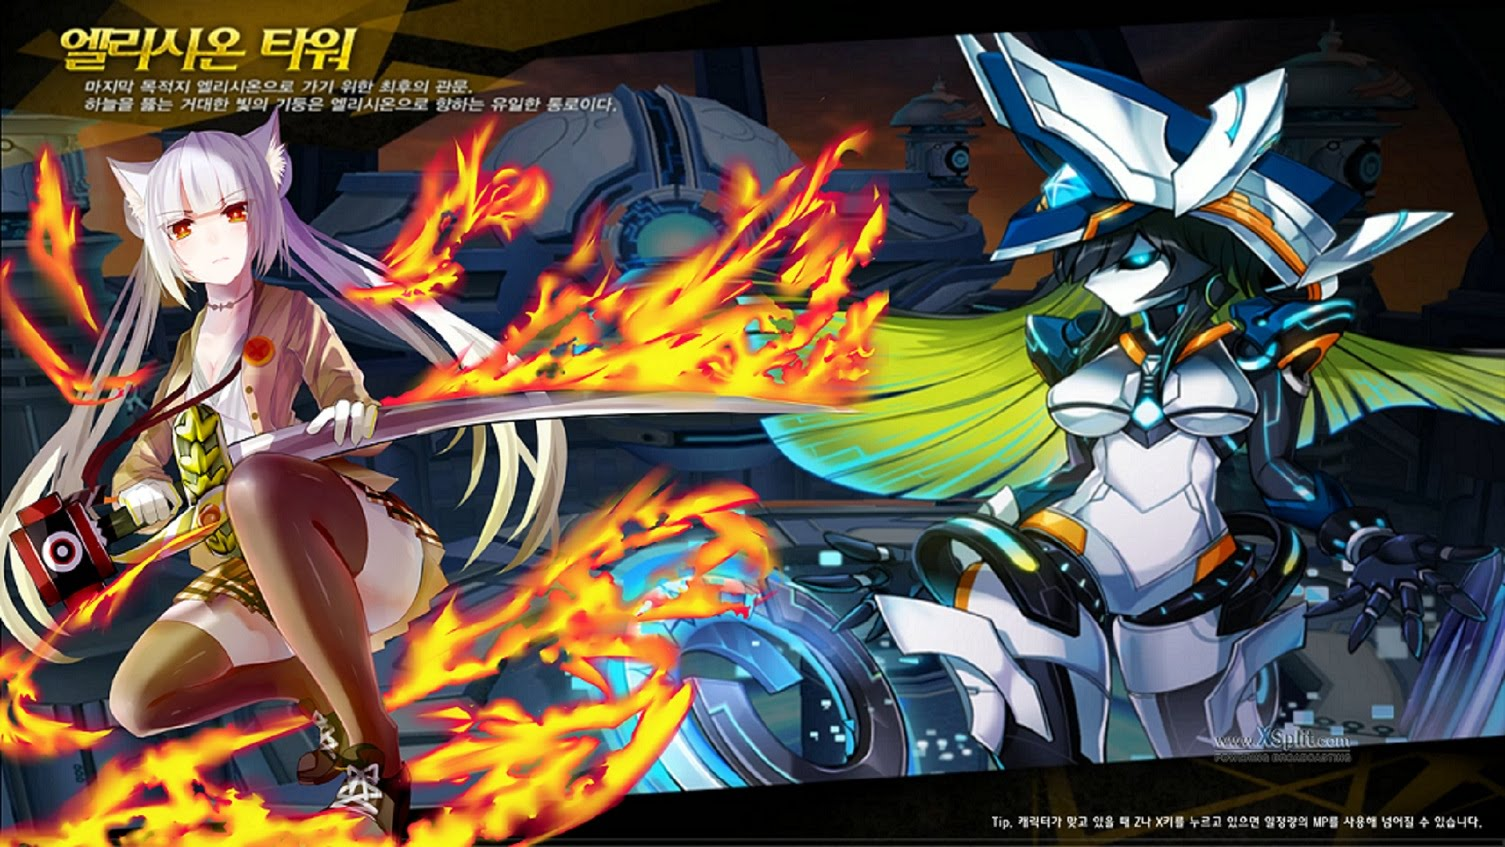 elsword elysion 01